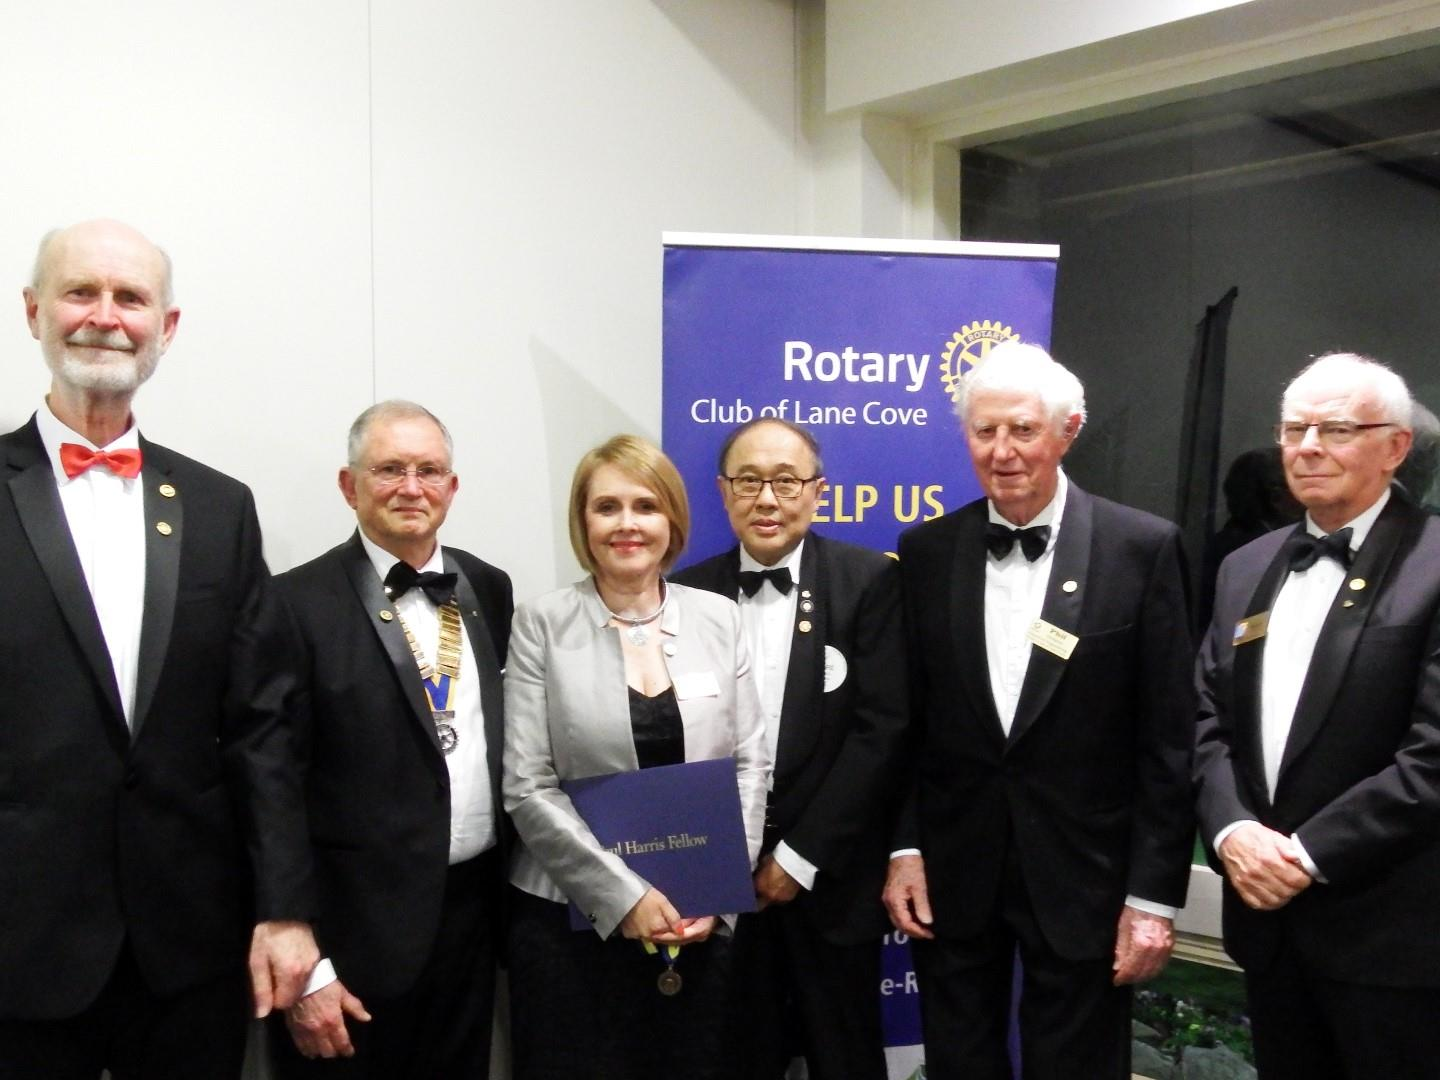 528b951bb3f PHF awards were awarded to Past President Phil Dudgeon, Past President  Roger Wescombe, Past President Andre Hariman (from the Chatswood Sunrise  Rotary Club) ...